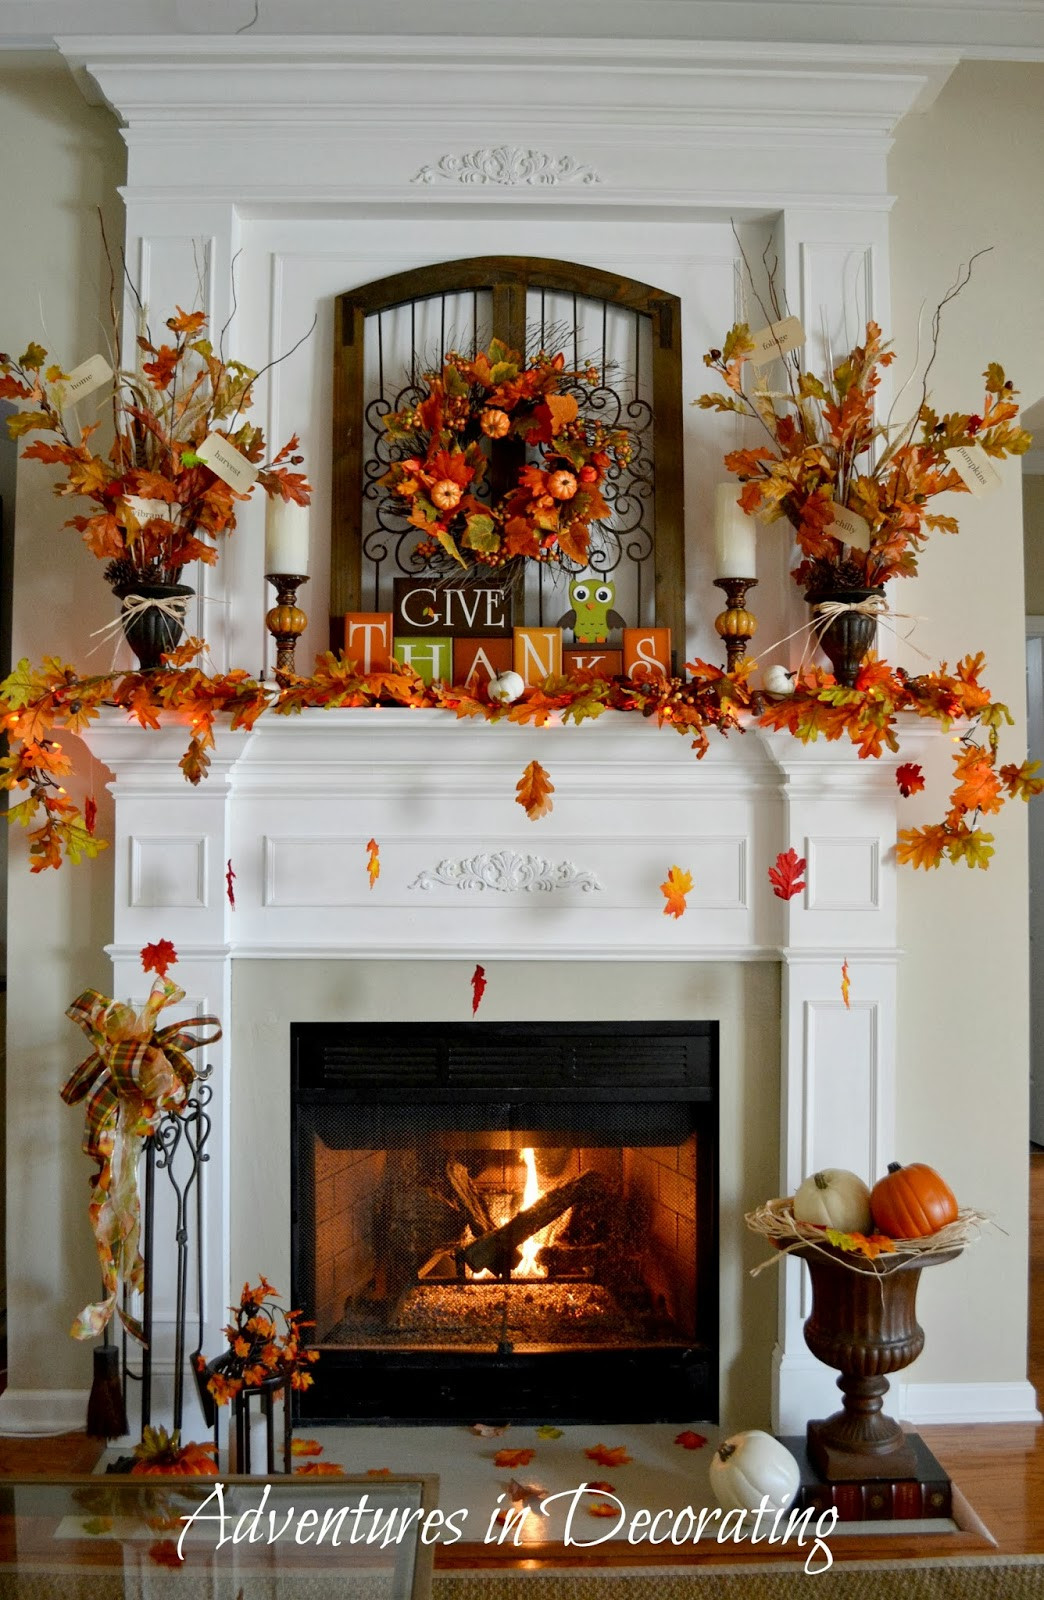 Fall Decor For Fireplace Mantel  Adventures in Decorating Our Fall Mantel